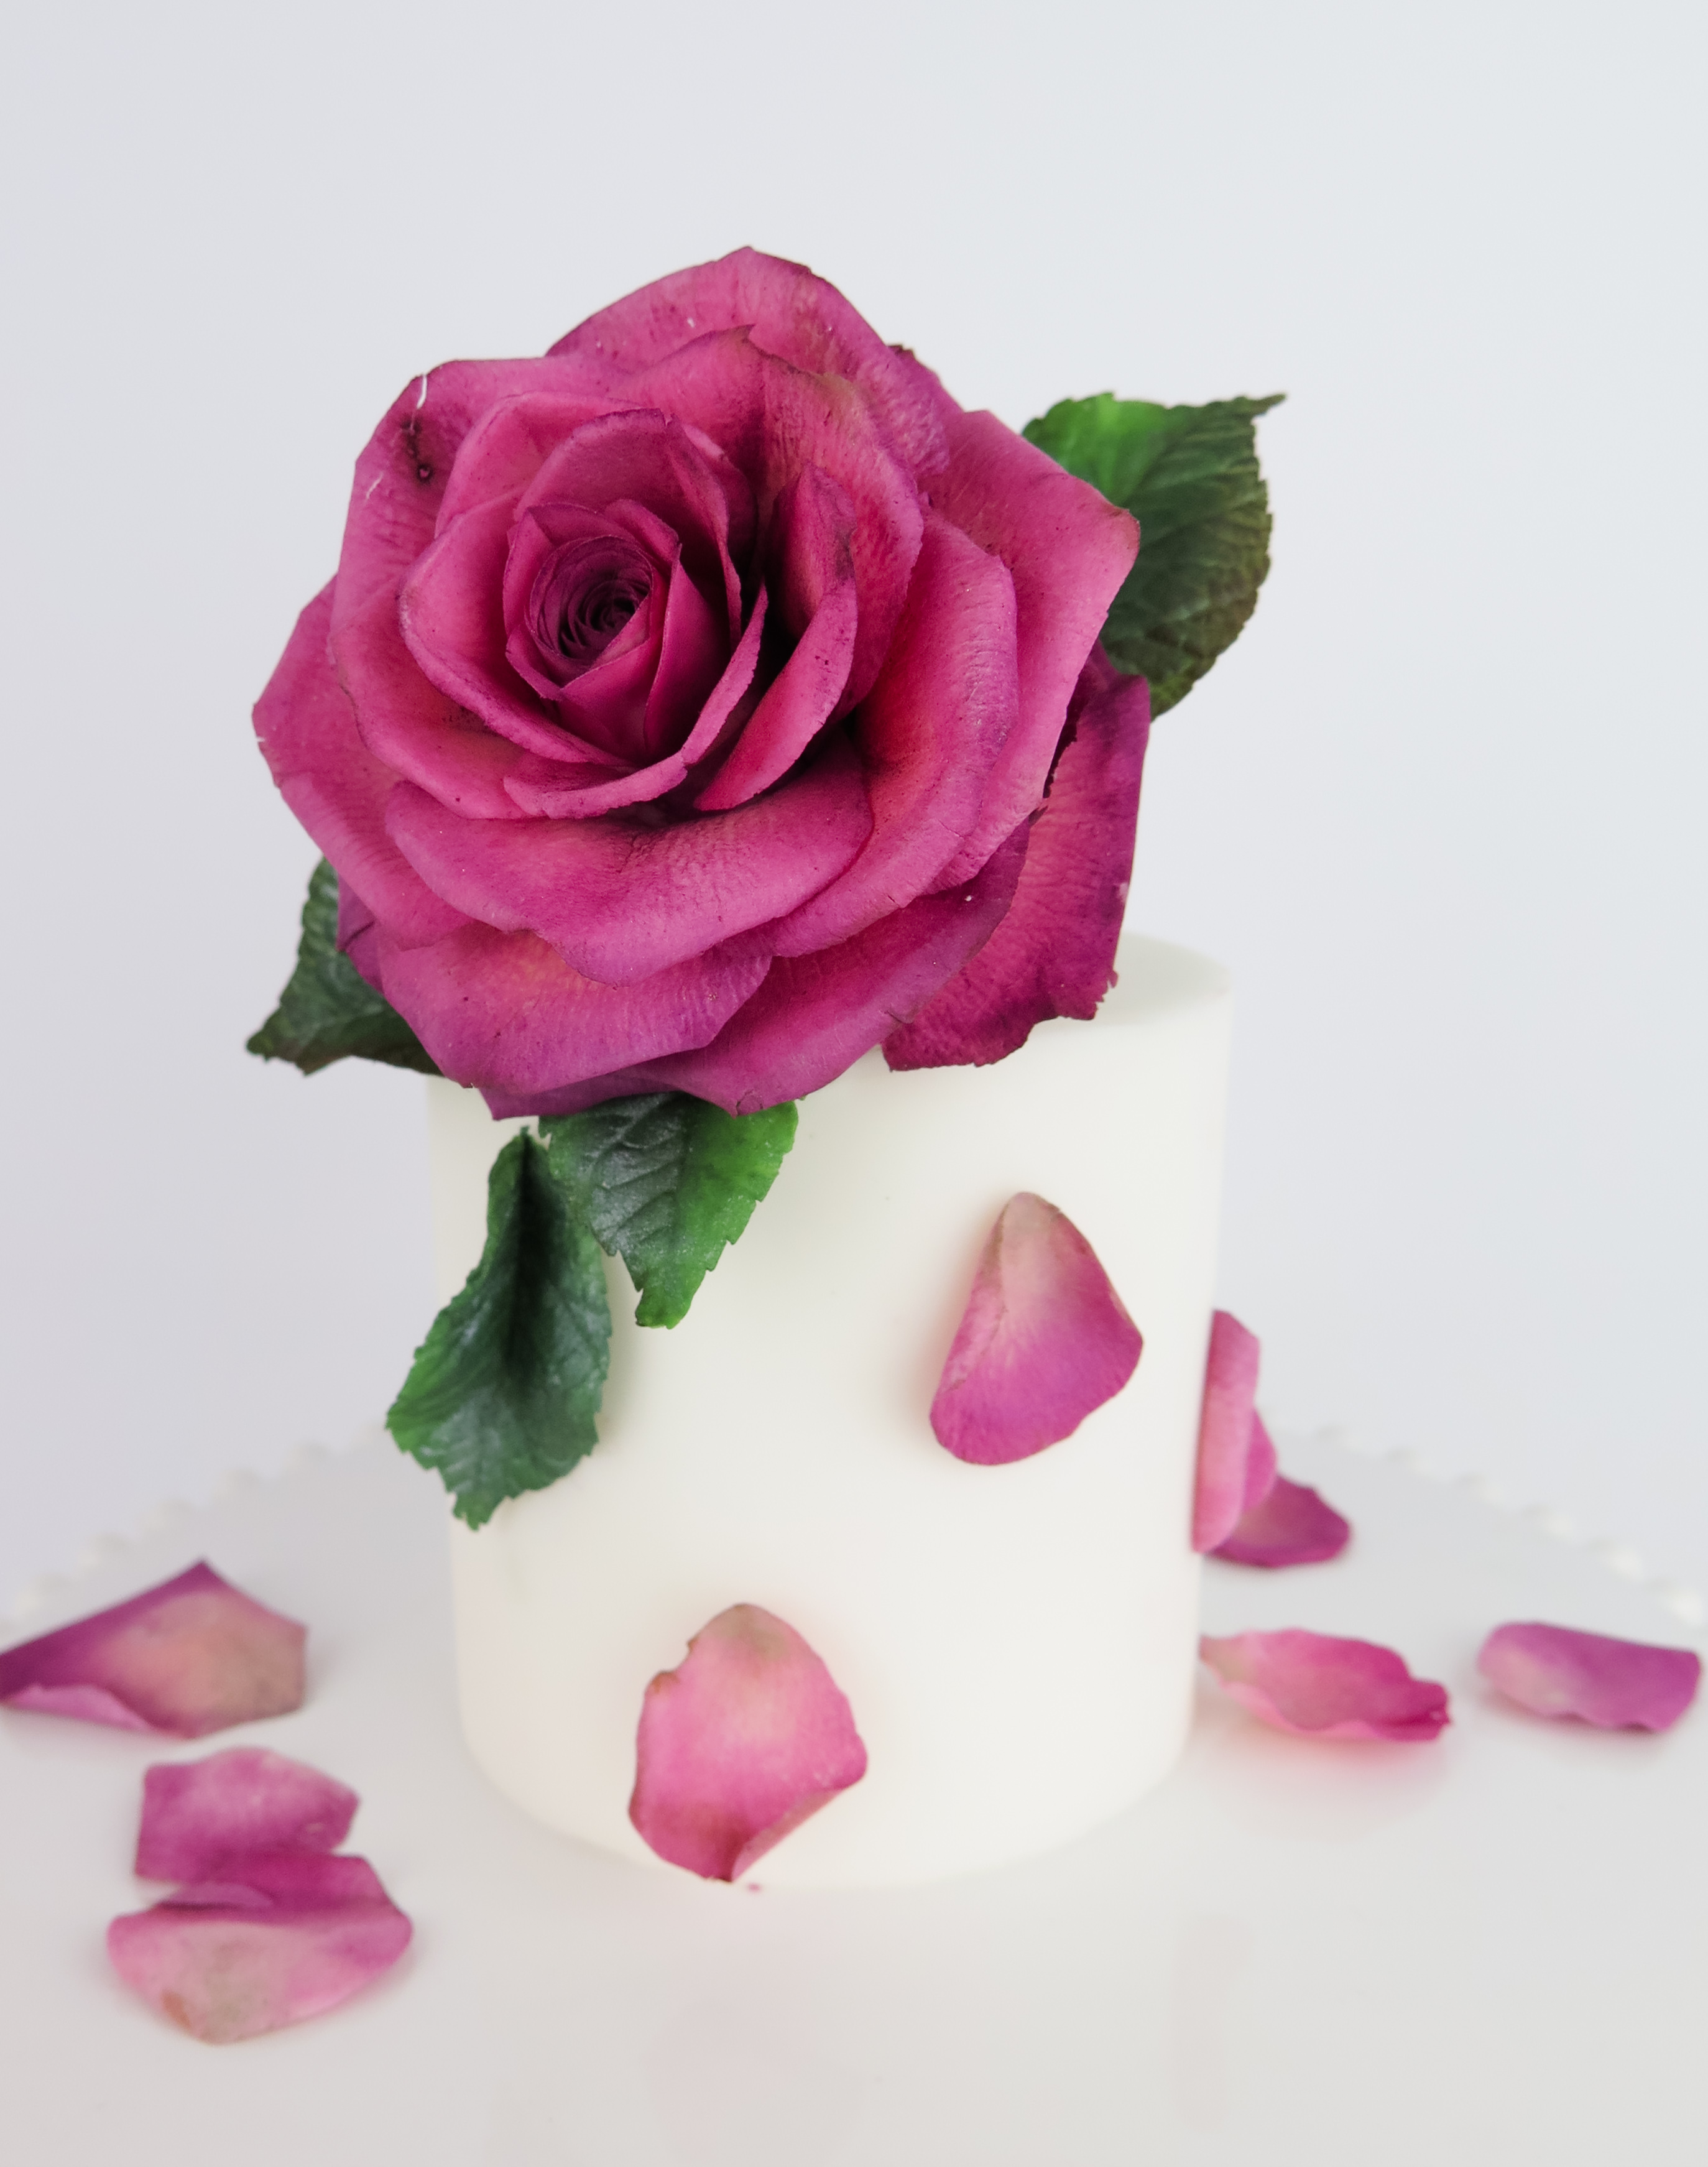 Mini white cake with oversized pink sugar rose on top